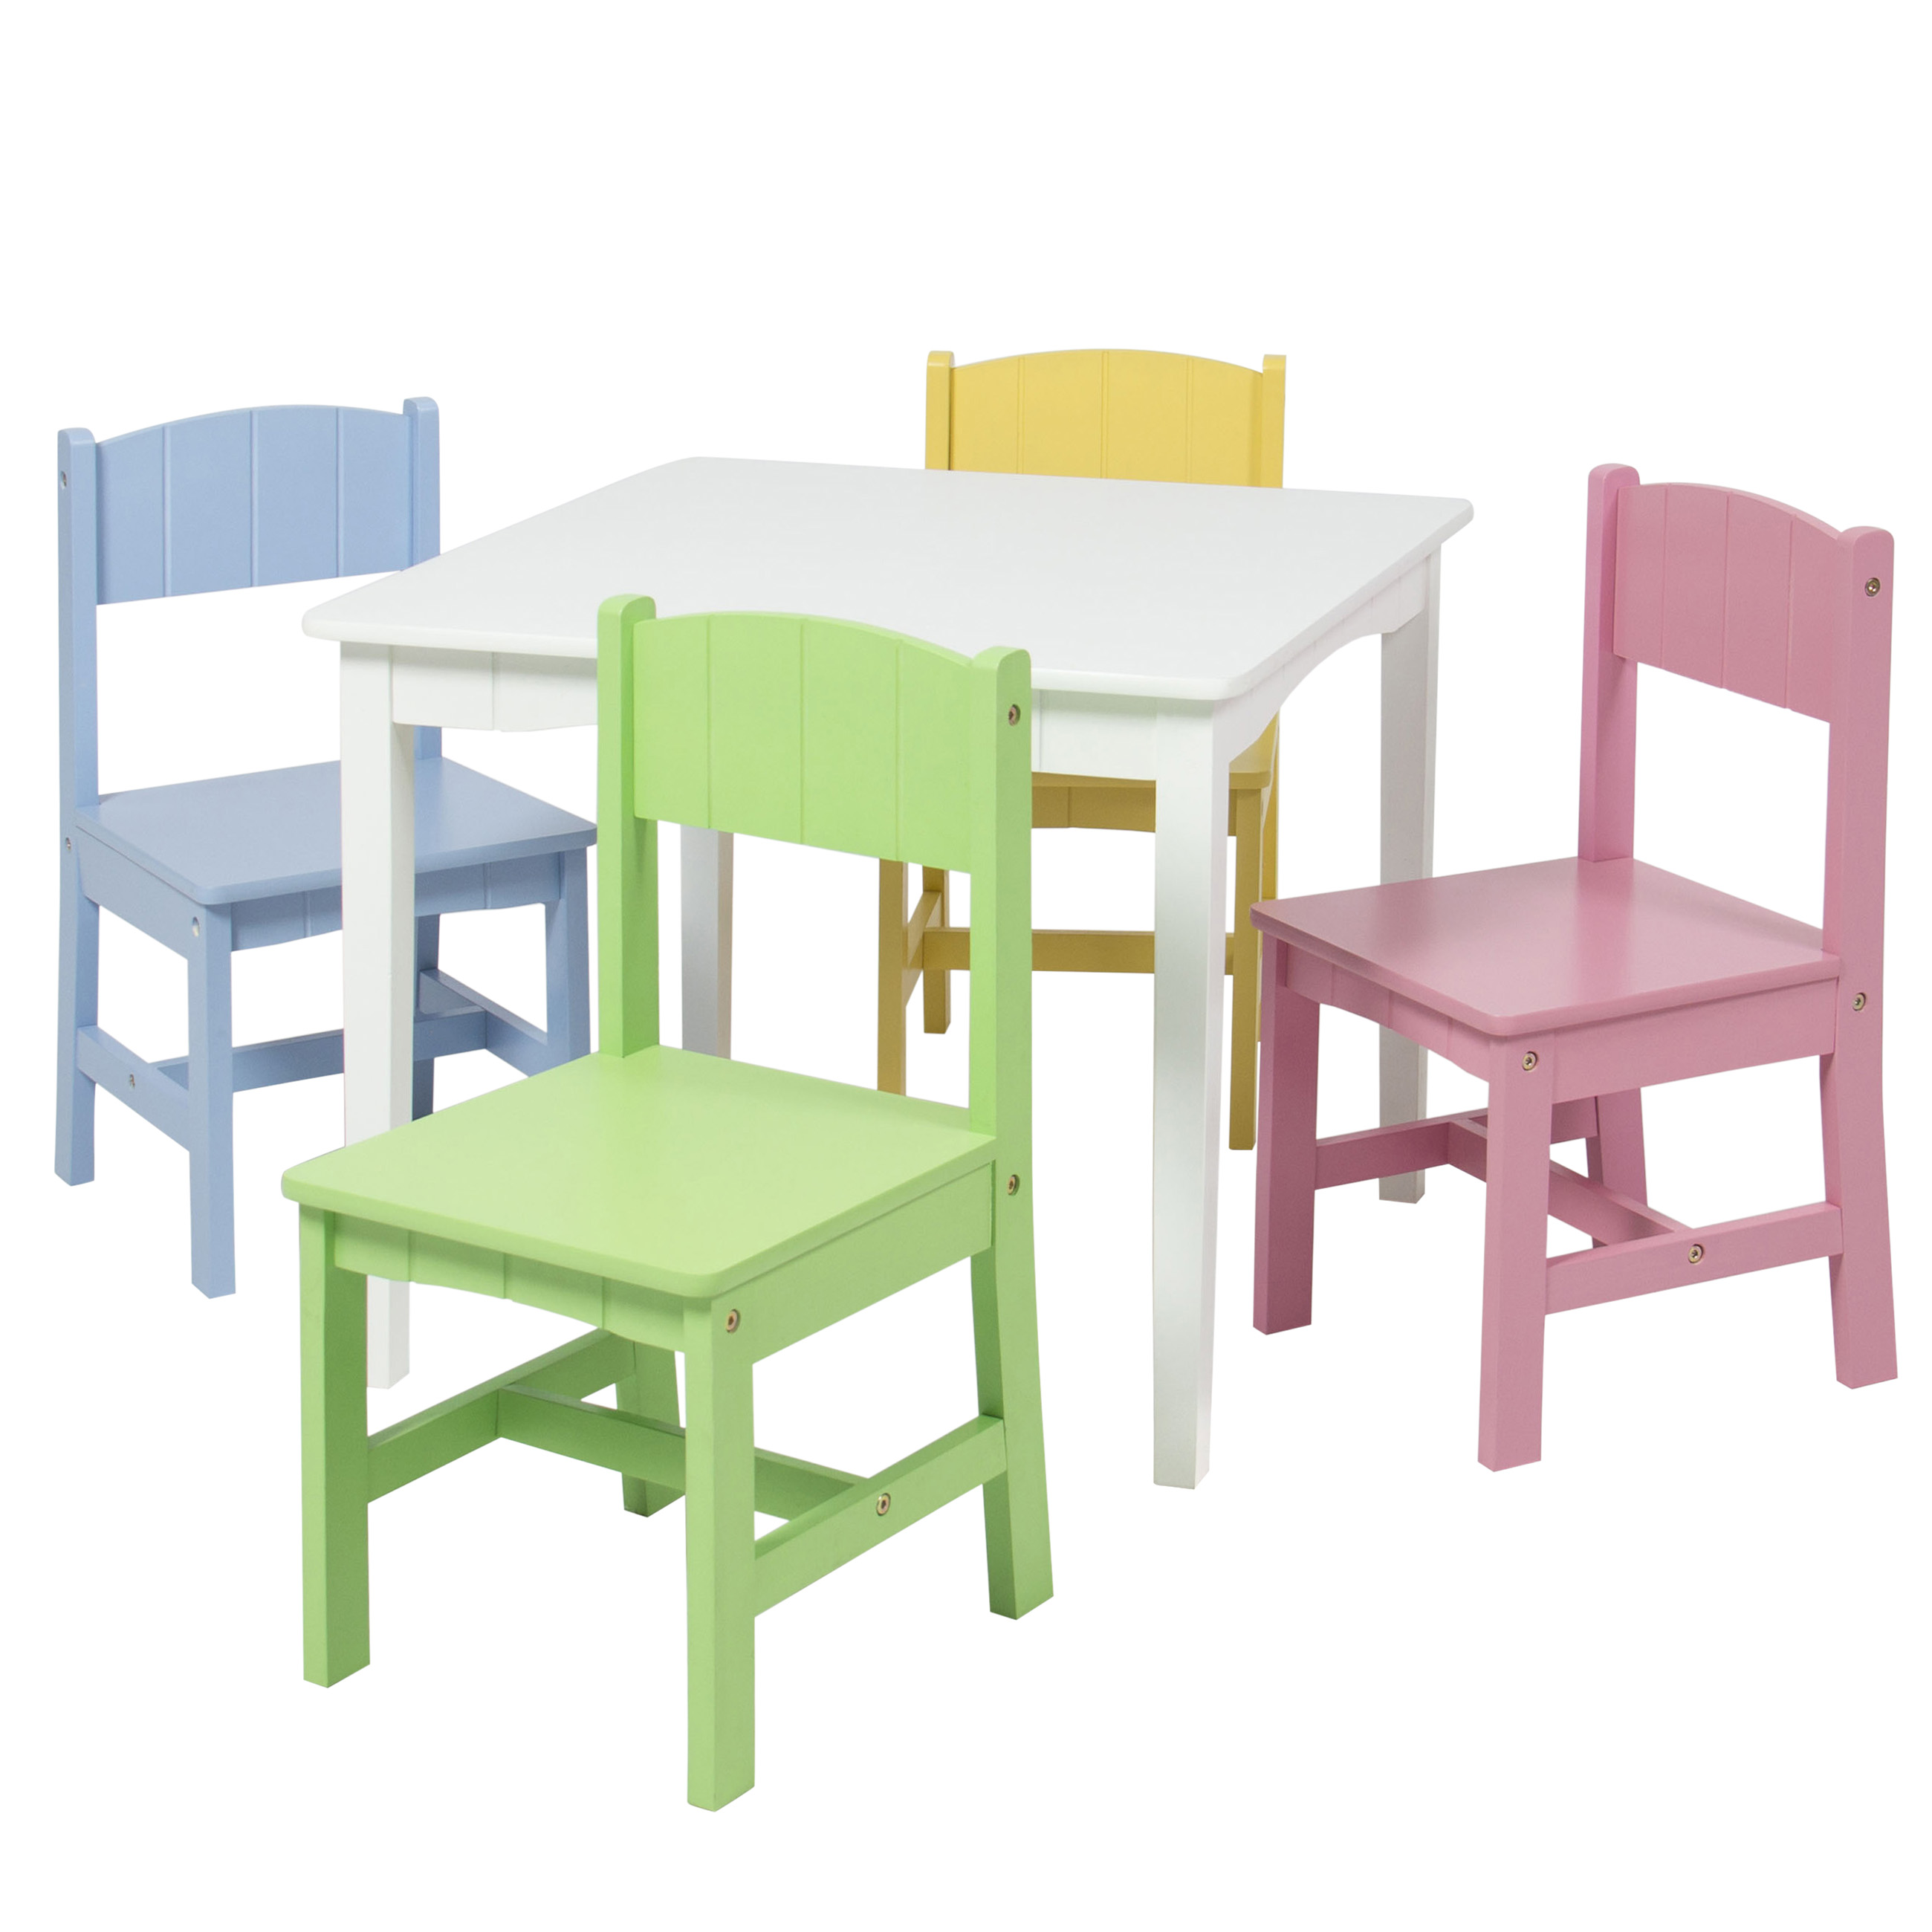 School Table And Chairs Wooden Kids Table And 4 Chairs Set Furniture Play Area